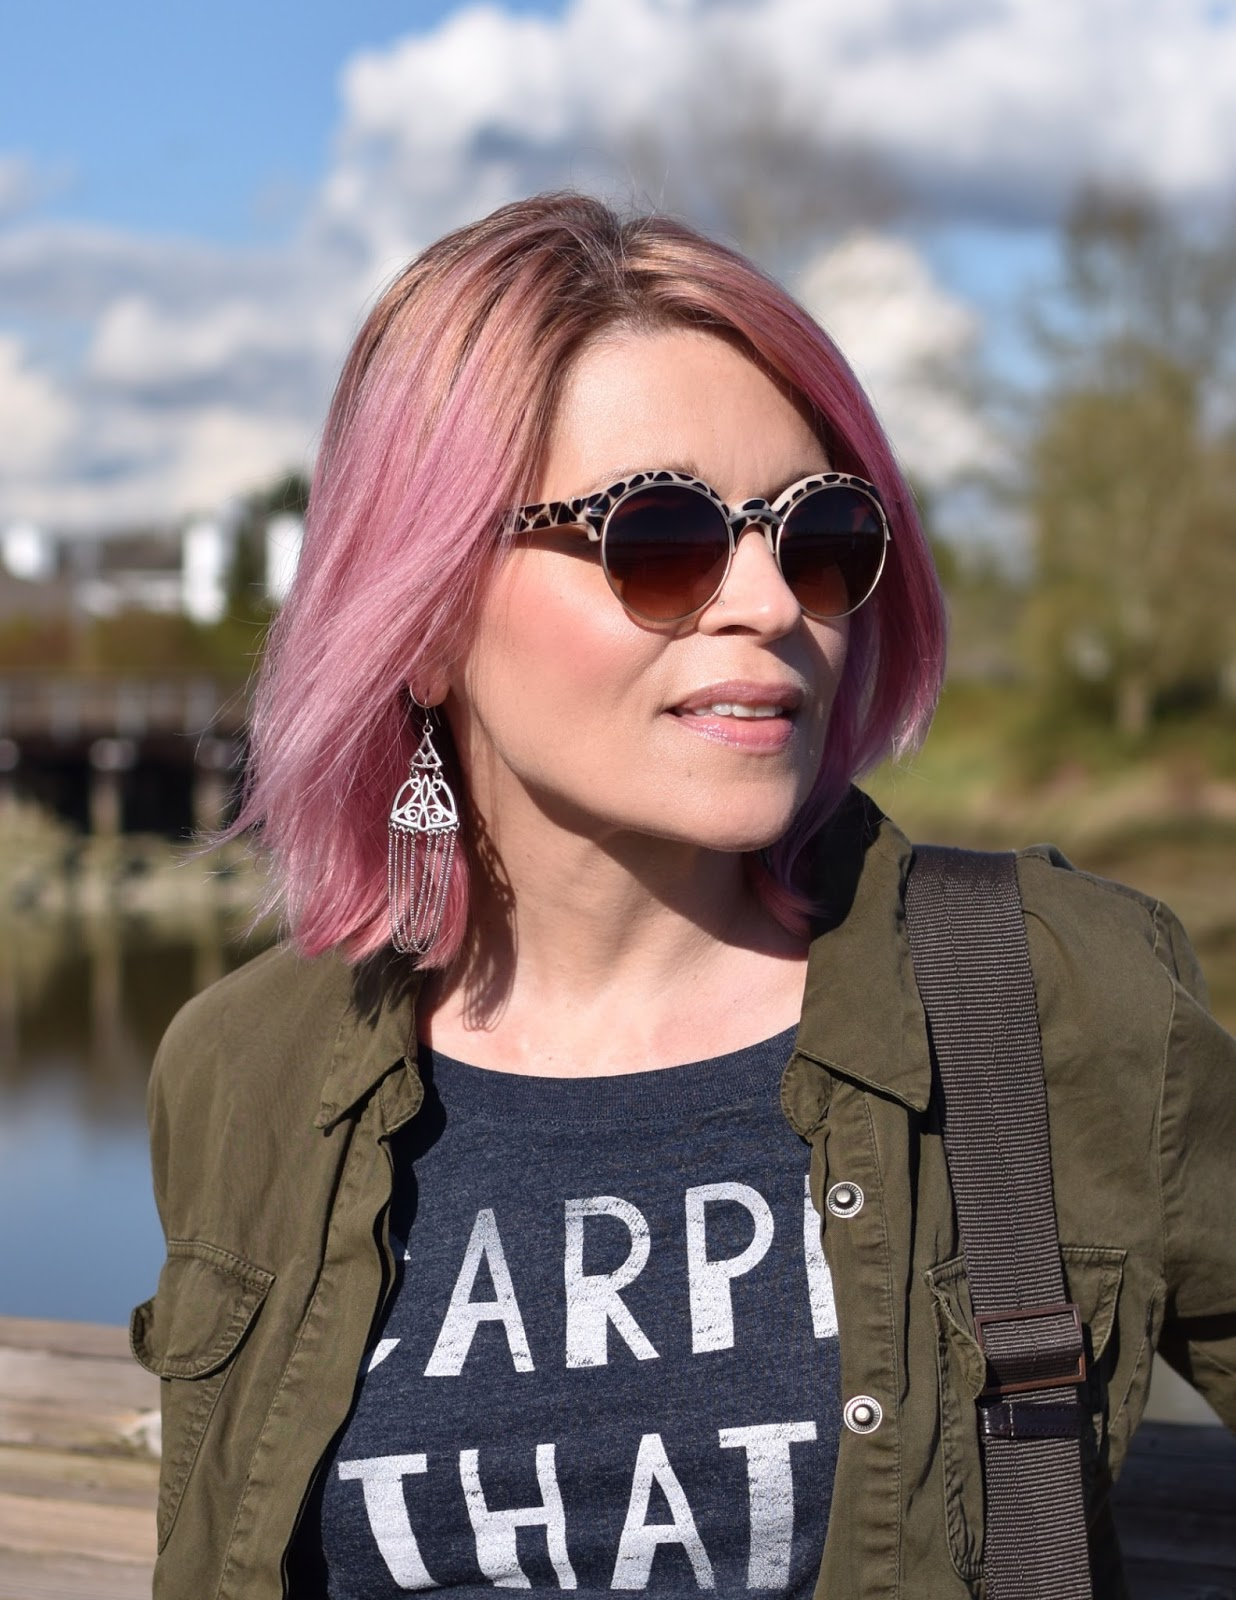 Monika Faulkner outfit inspiration - graphic tee, olive bomber jacket, Nanette sunglasses, pink hair